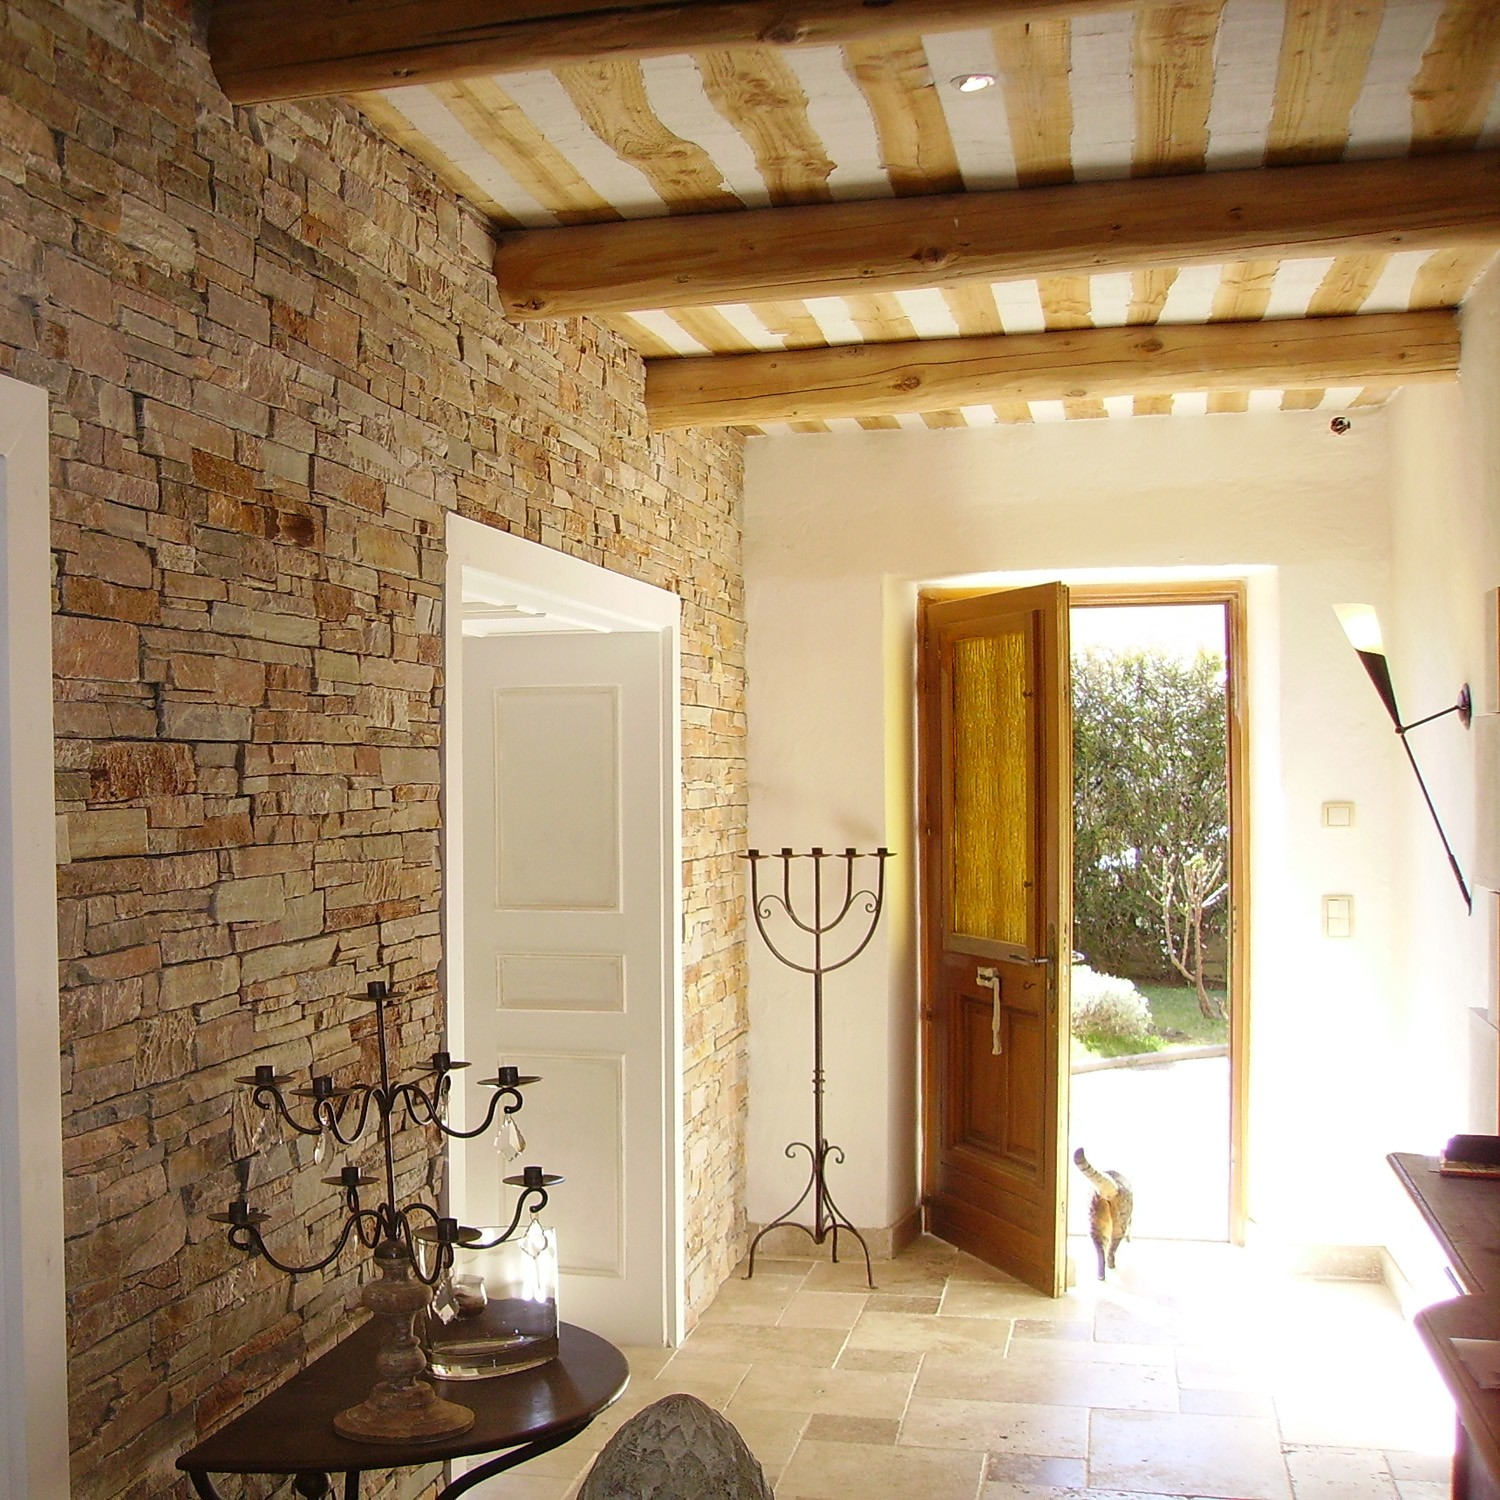 D coration interieur maison pierre exemples d 39 am nagements - Decoration maison ancienne interieur ...